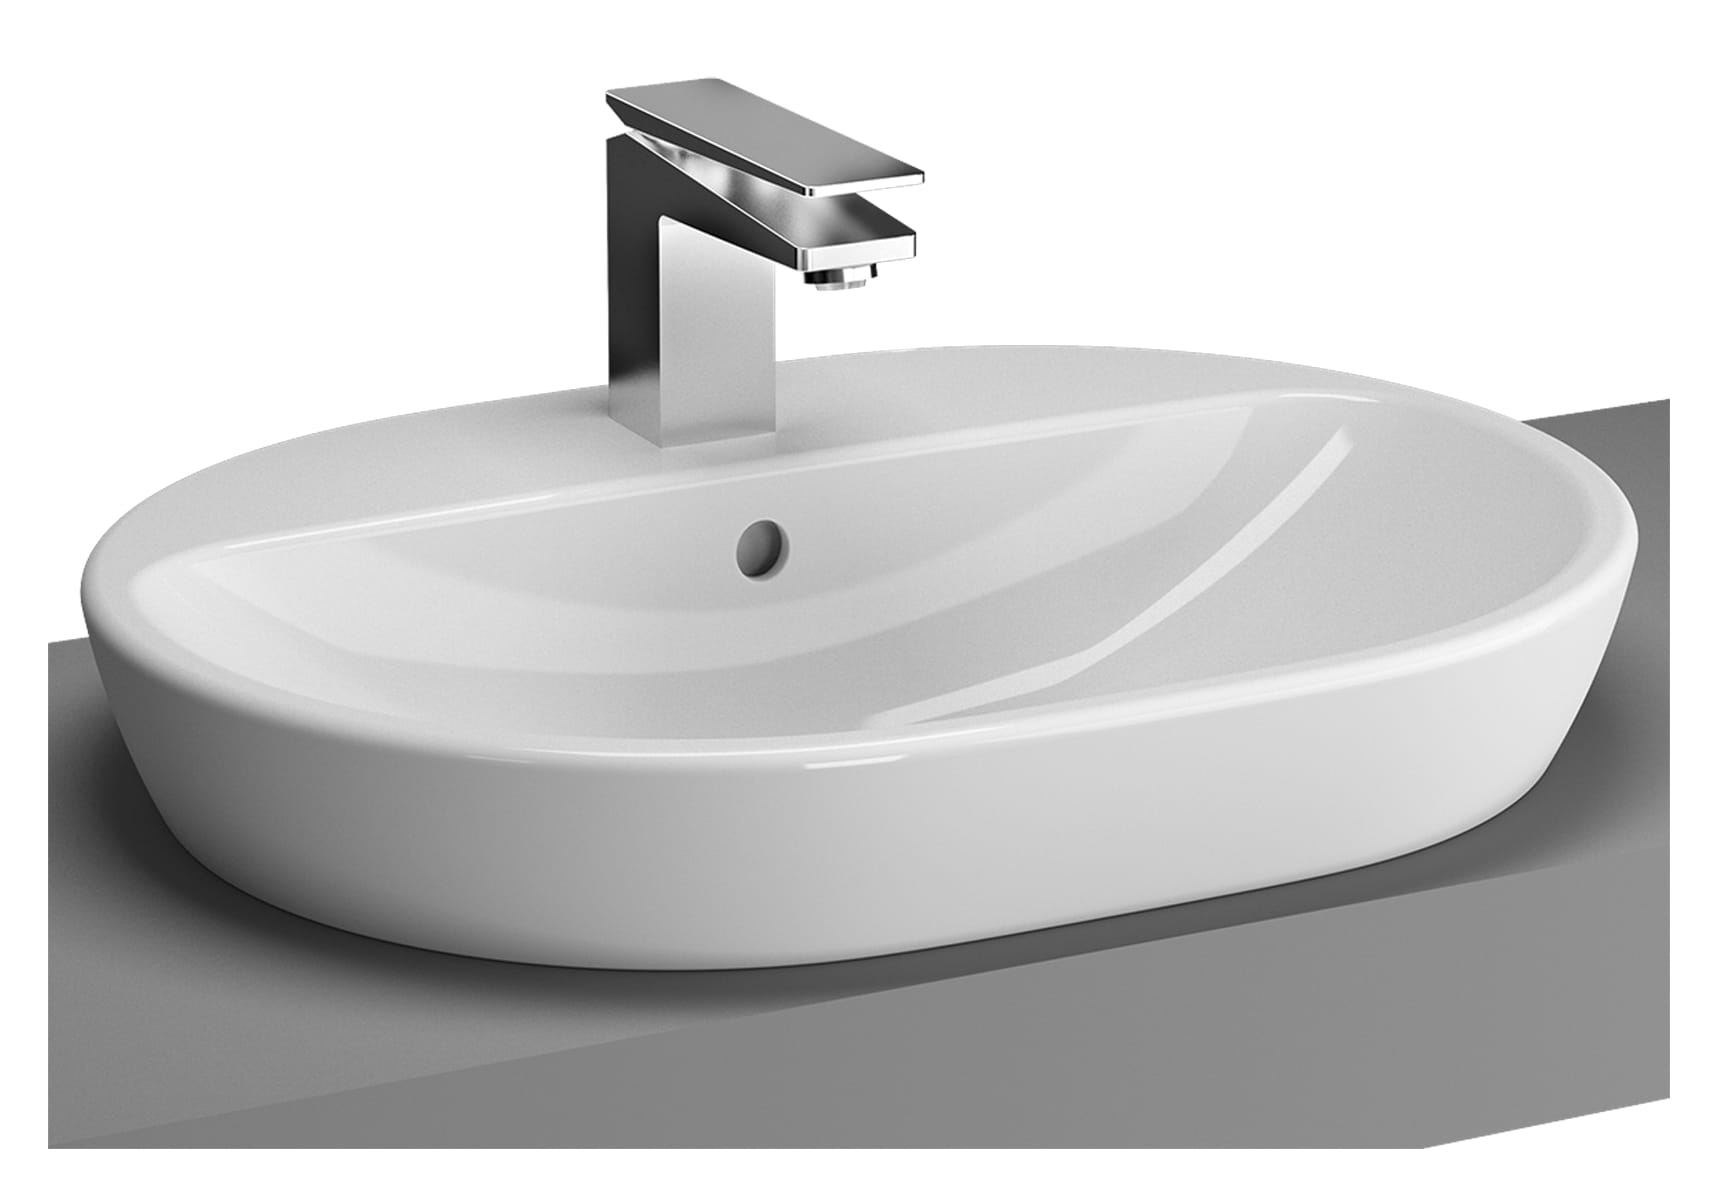 Metropole Countertop Round Bowl, 60cm, with Tap Hole, without Overflow Hole